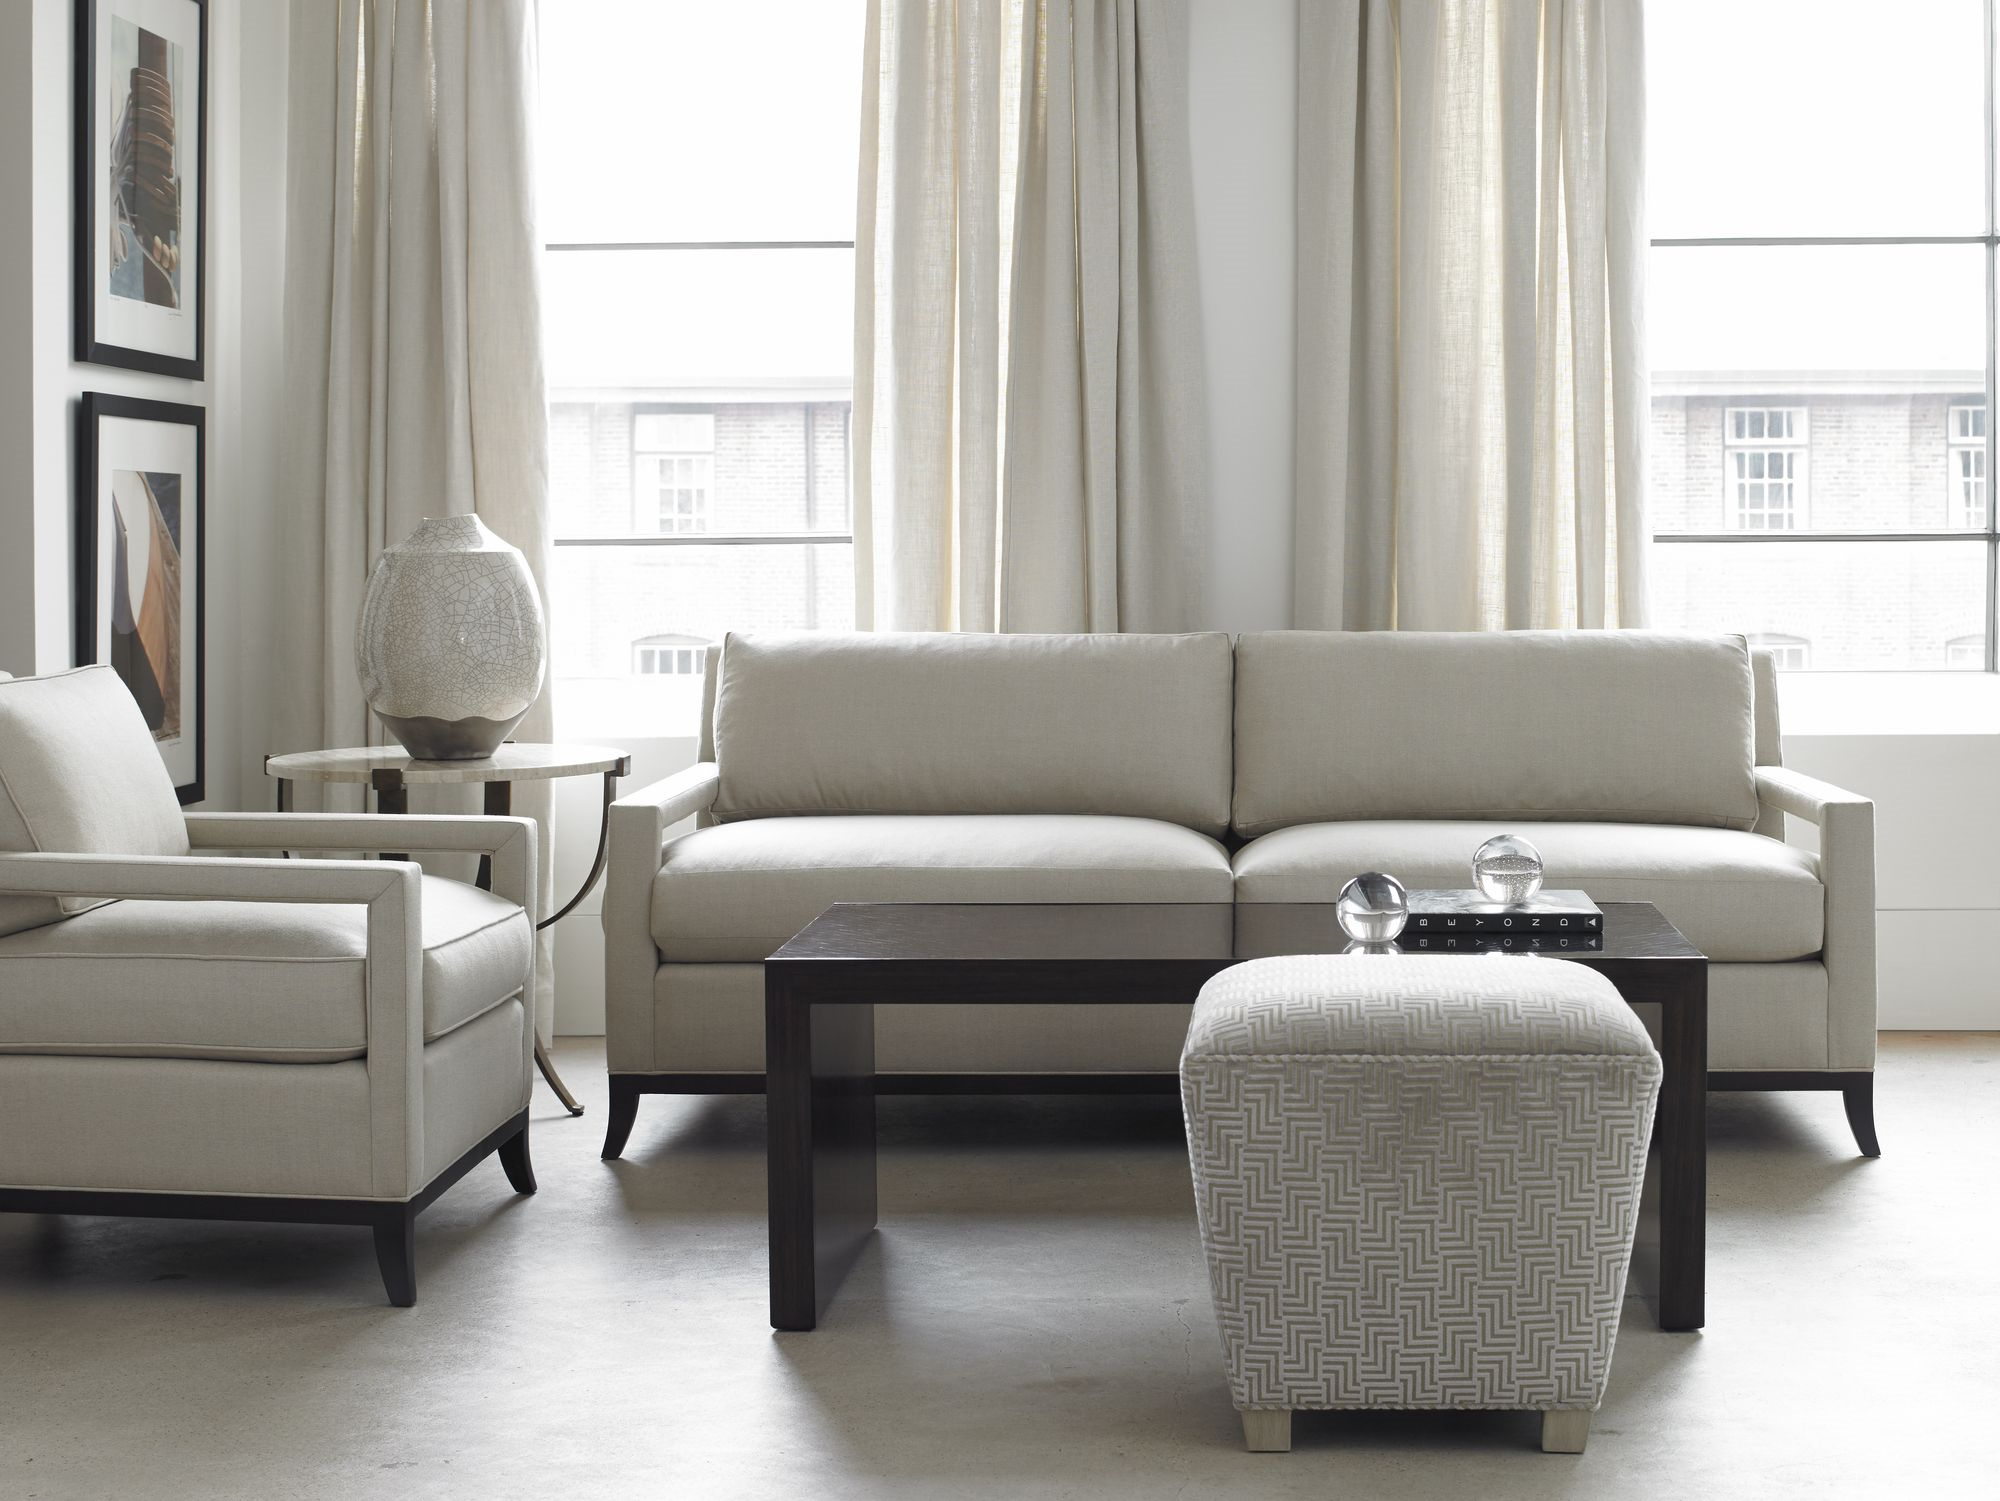 Pearson Inspiration Luxury Furnishings & Textiles furniture